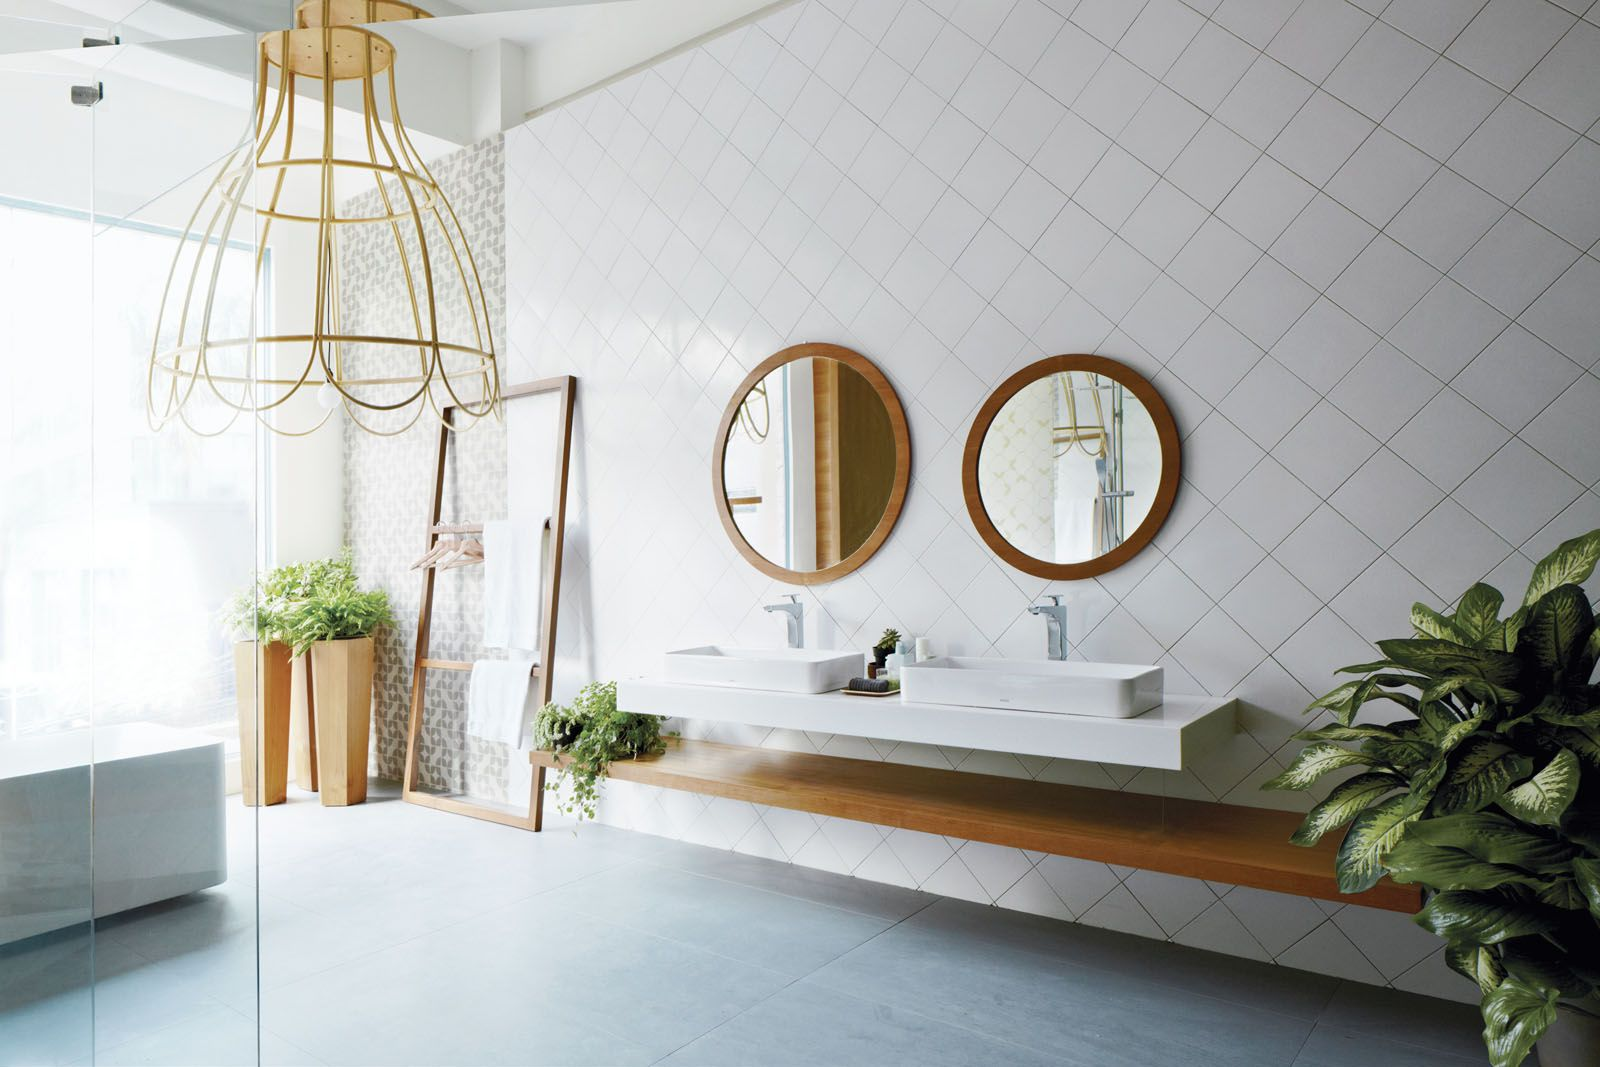 The Toja bathroom collection from Toto